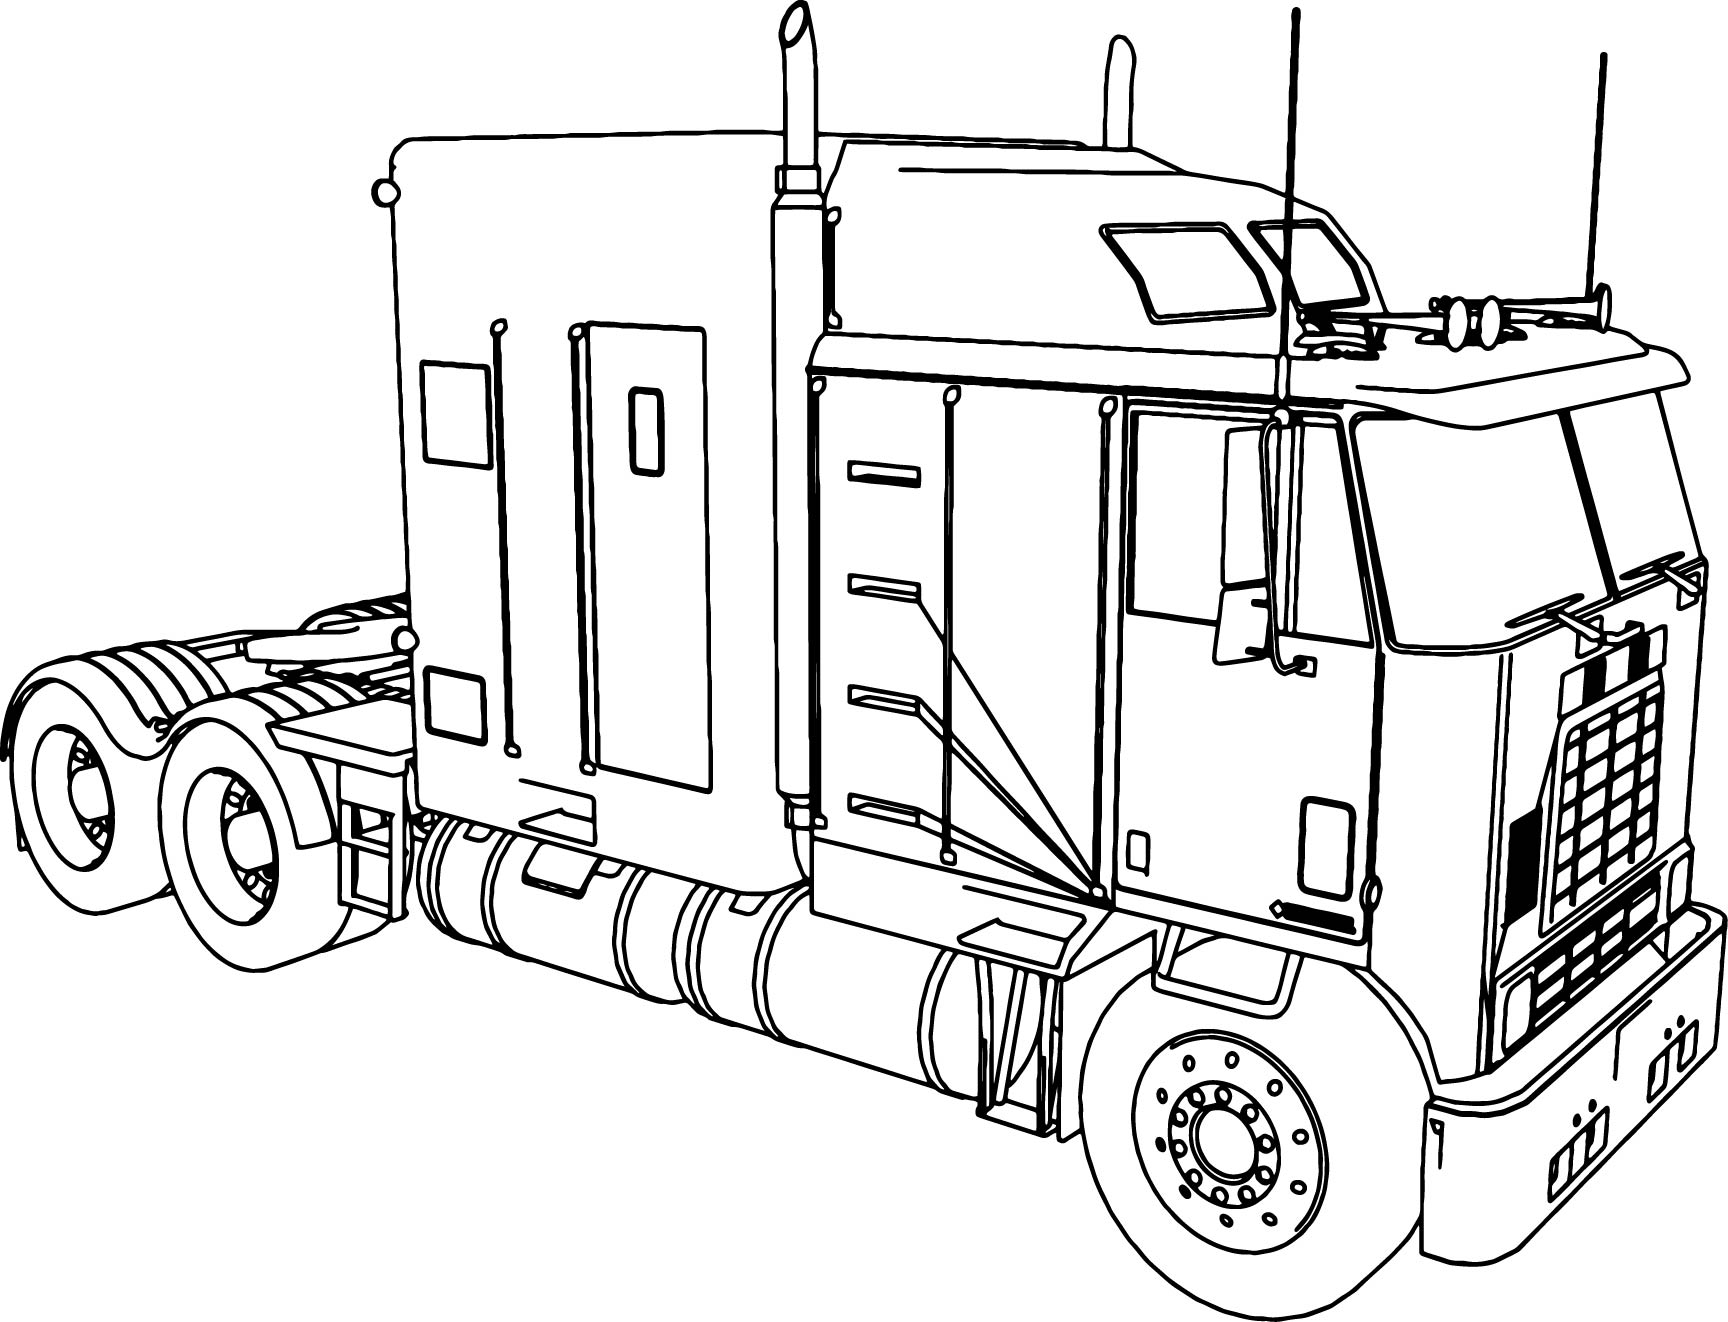 colouring in trucks coloring page large truck colouring in trucks